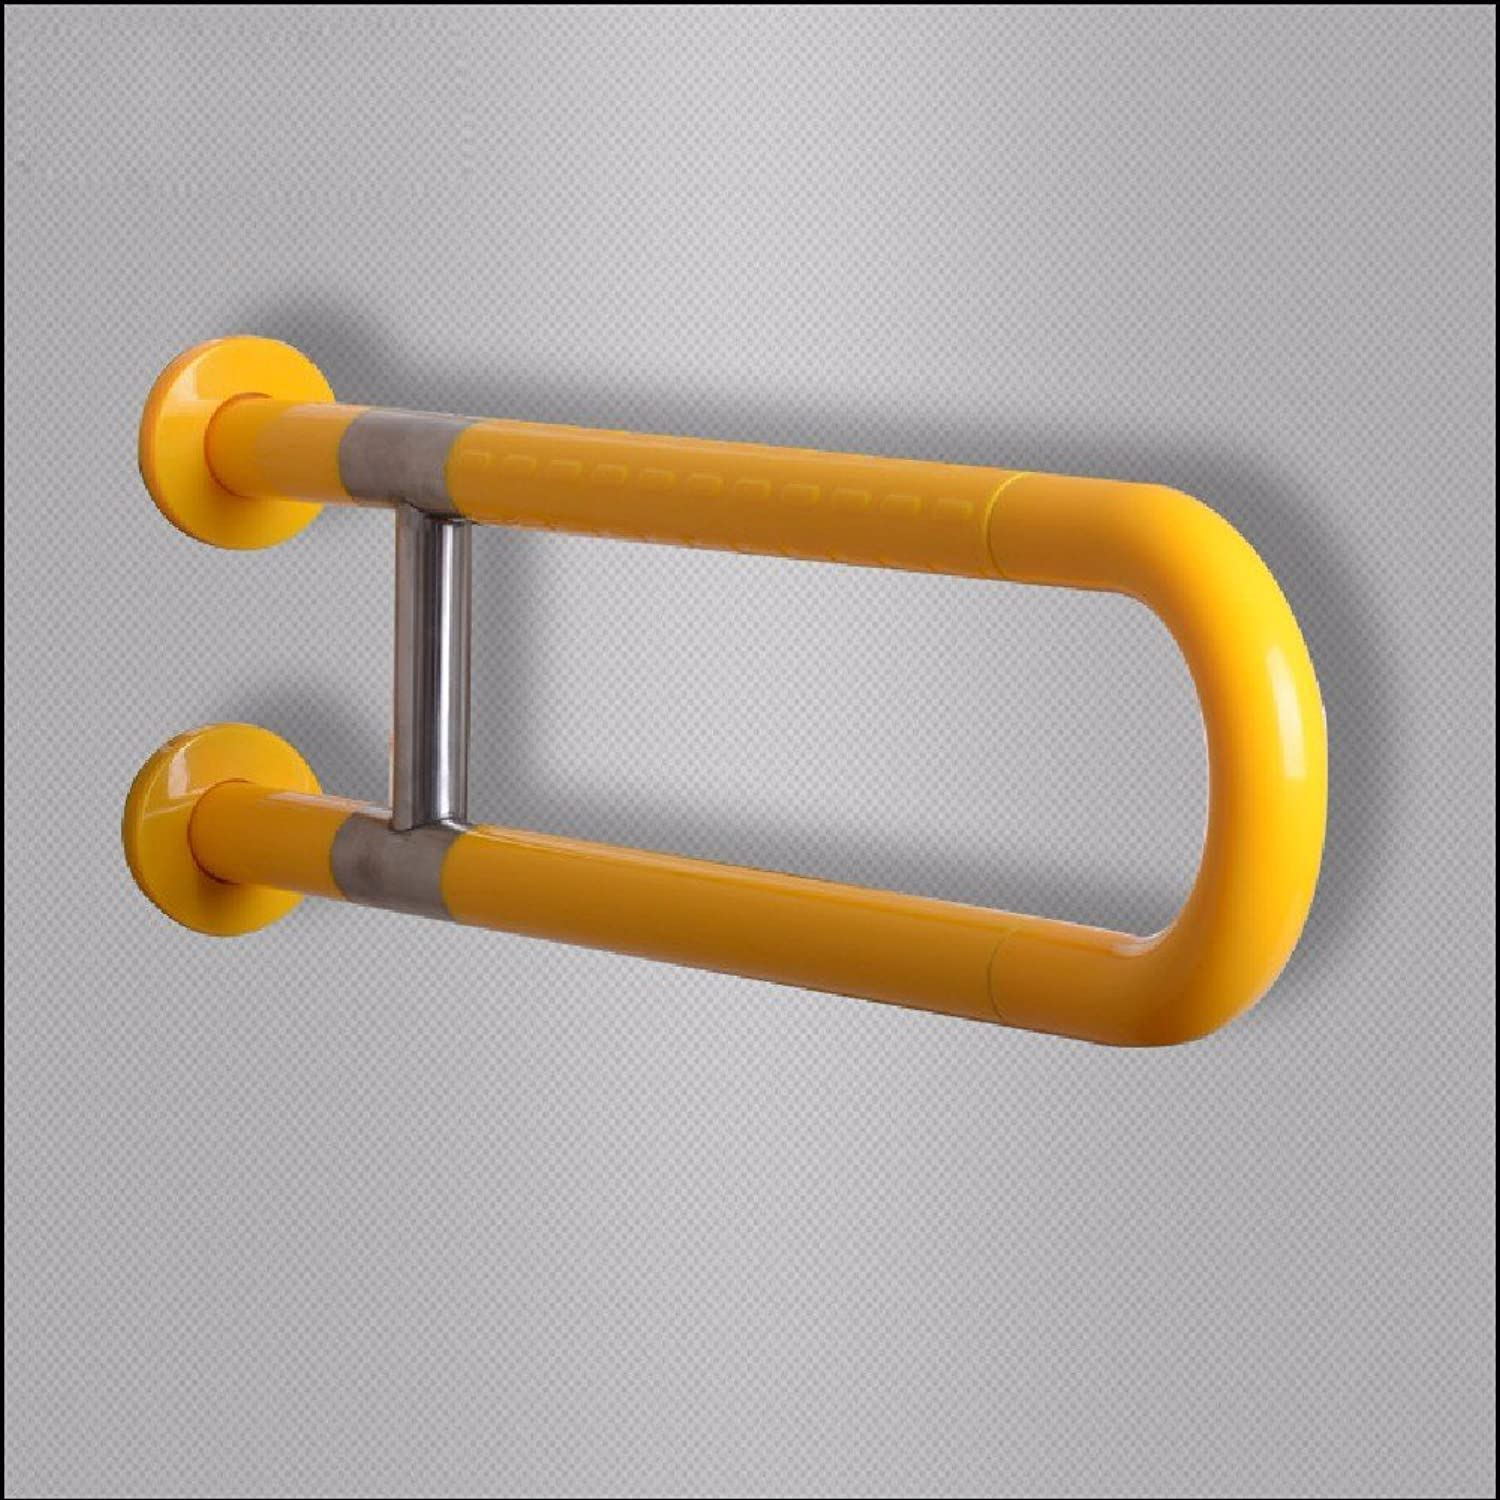 HQLCX Handrail Toilet U Type Bathroom Safety Old People Disabled Handrail,Yellow